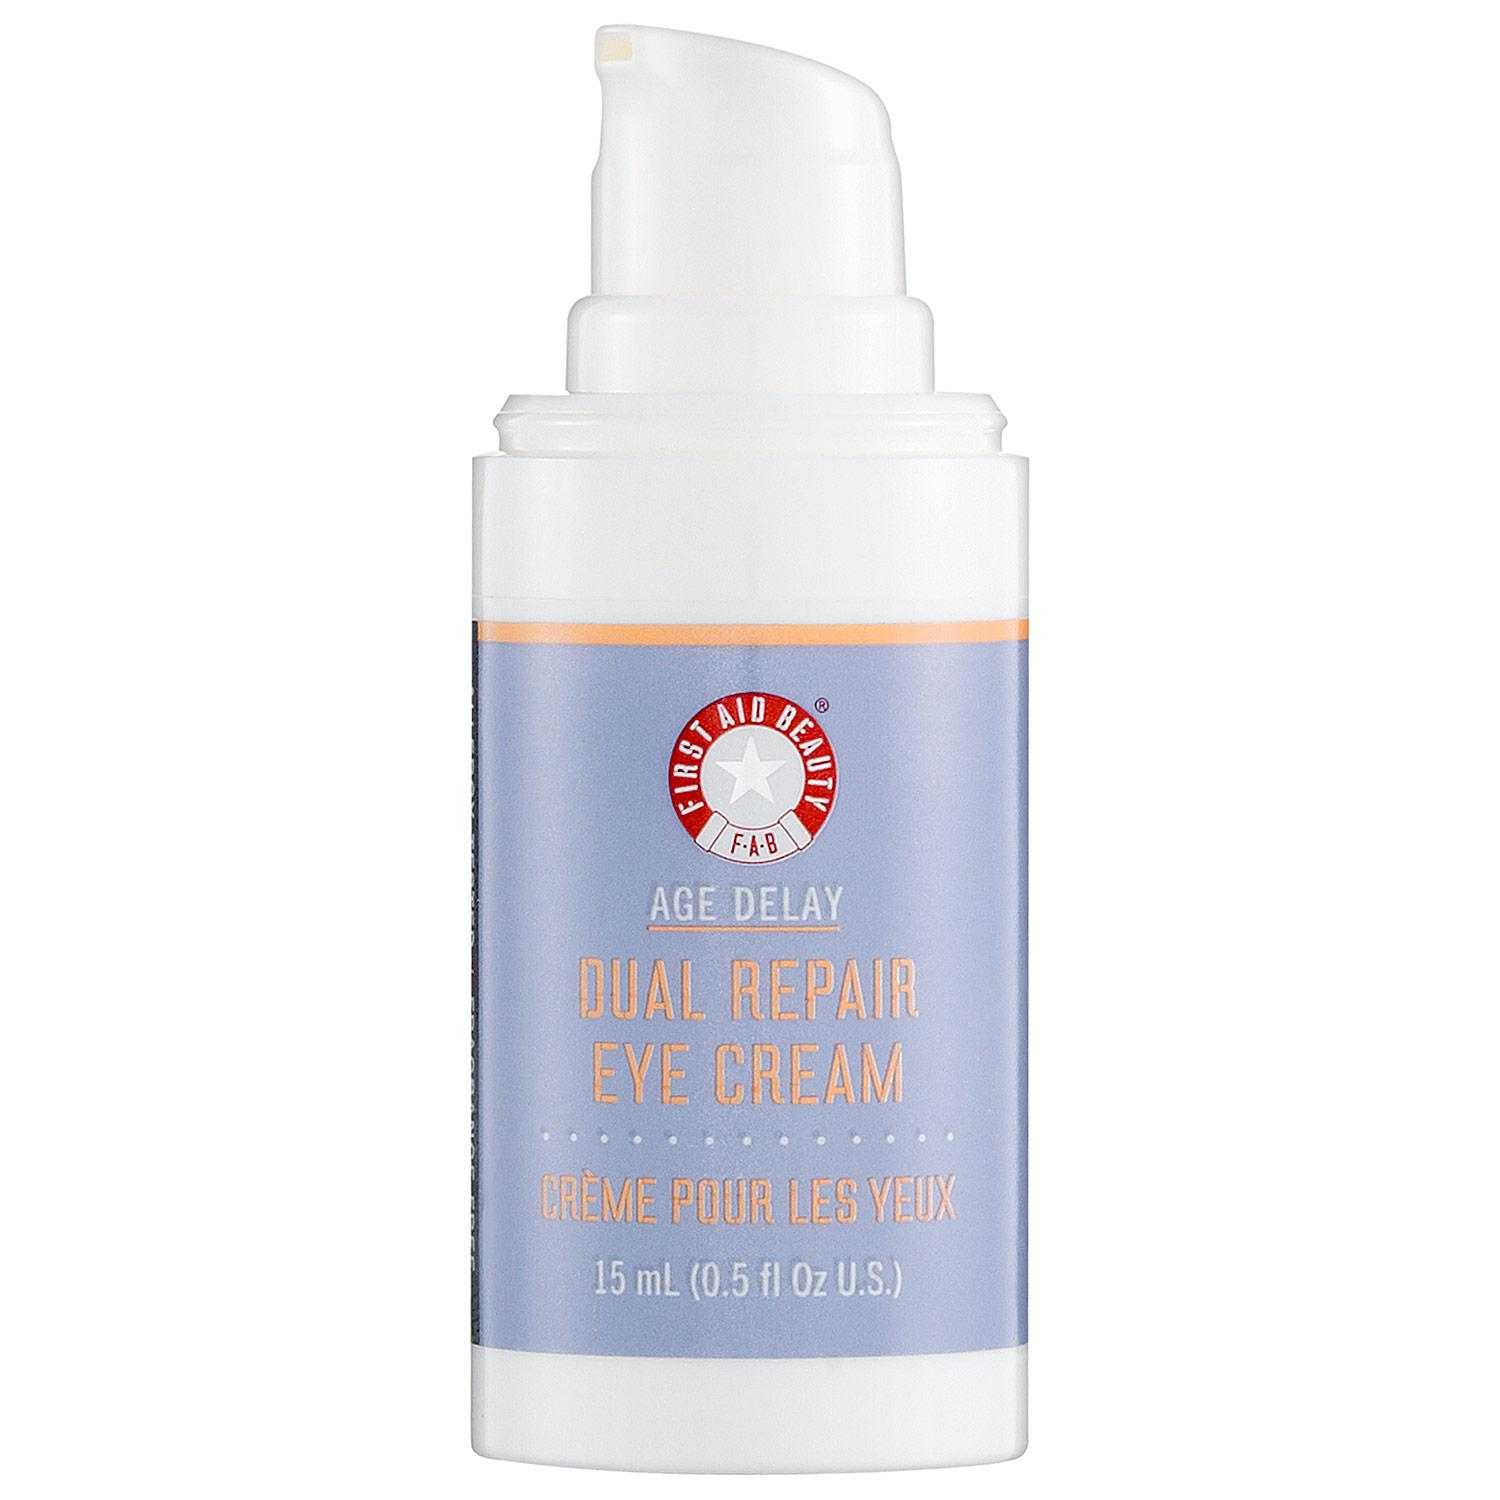 Dual Repair Eye Cream